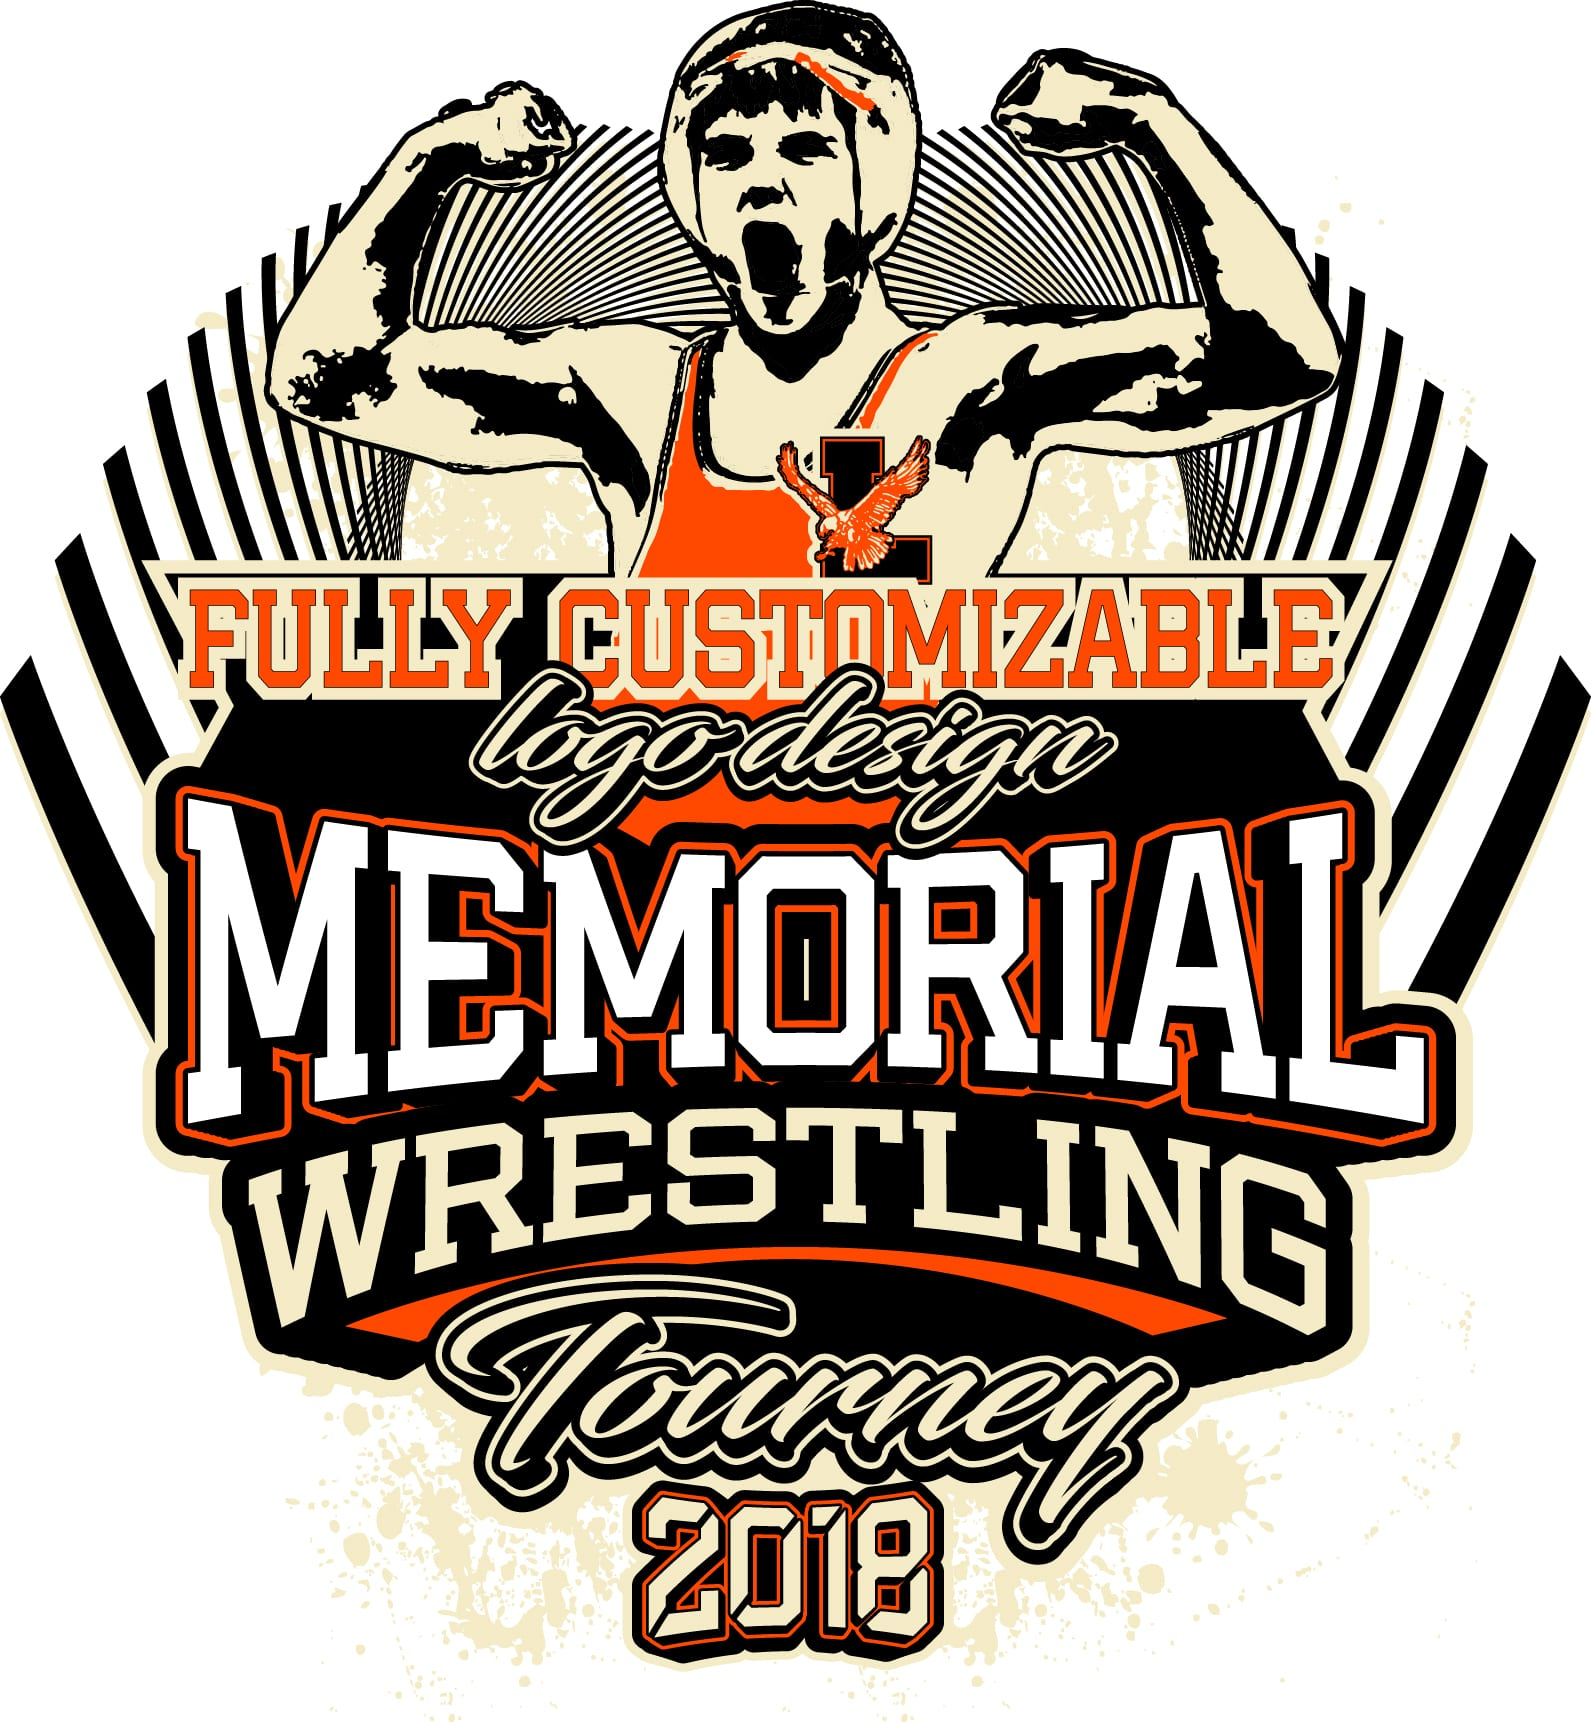 MEMORIAL WRESTLING TOURNEY FULLY CUSTOMIZABLE T-SHIRT LOGO DESIGN